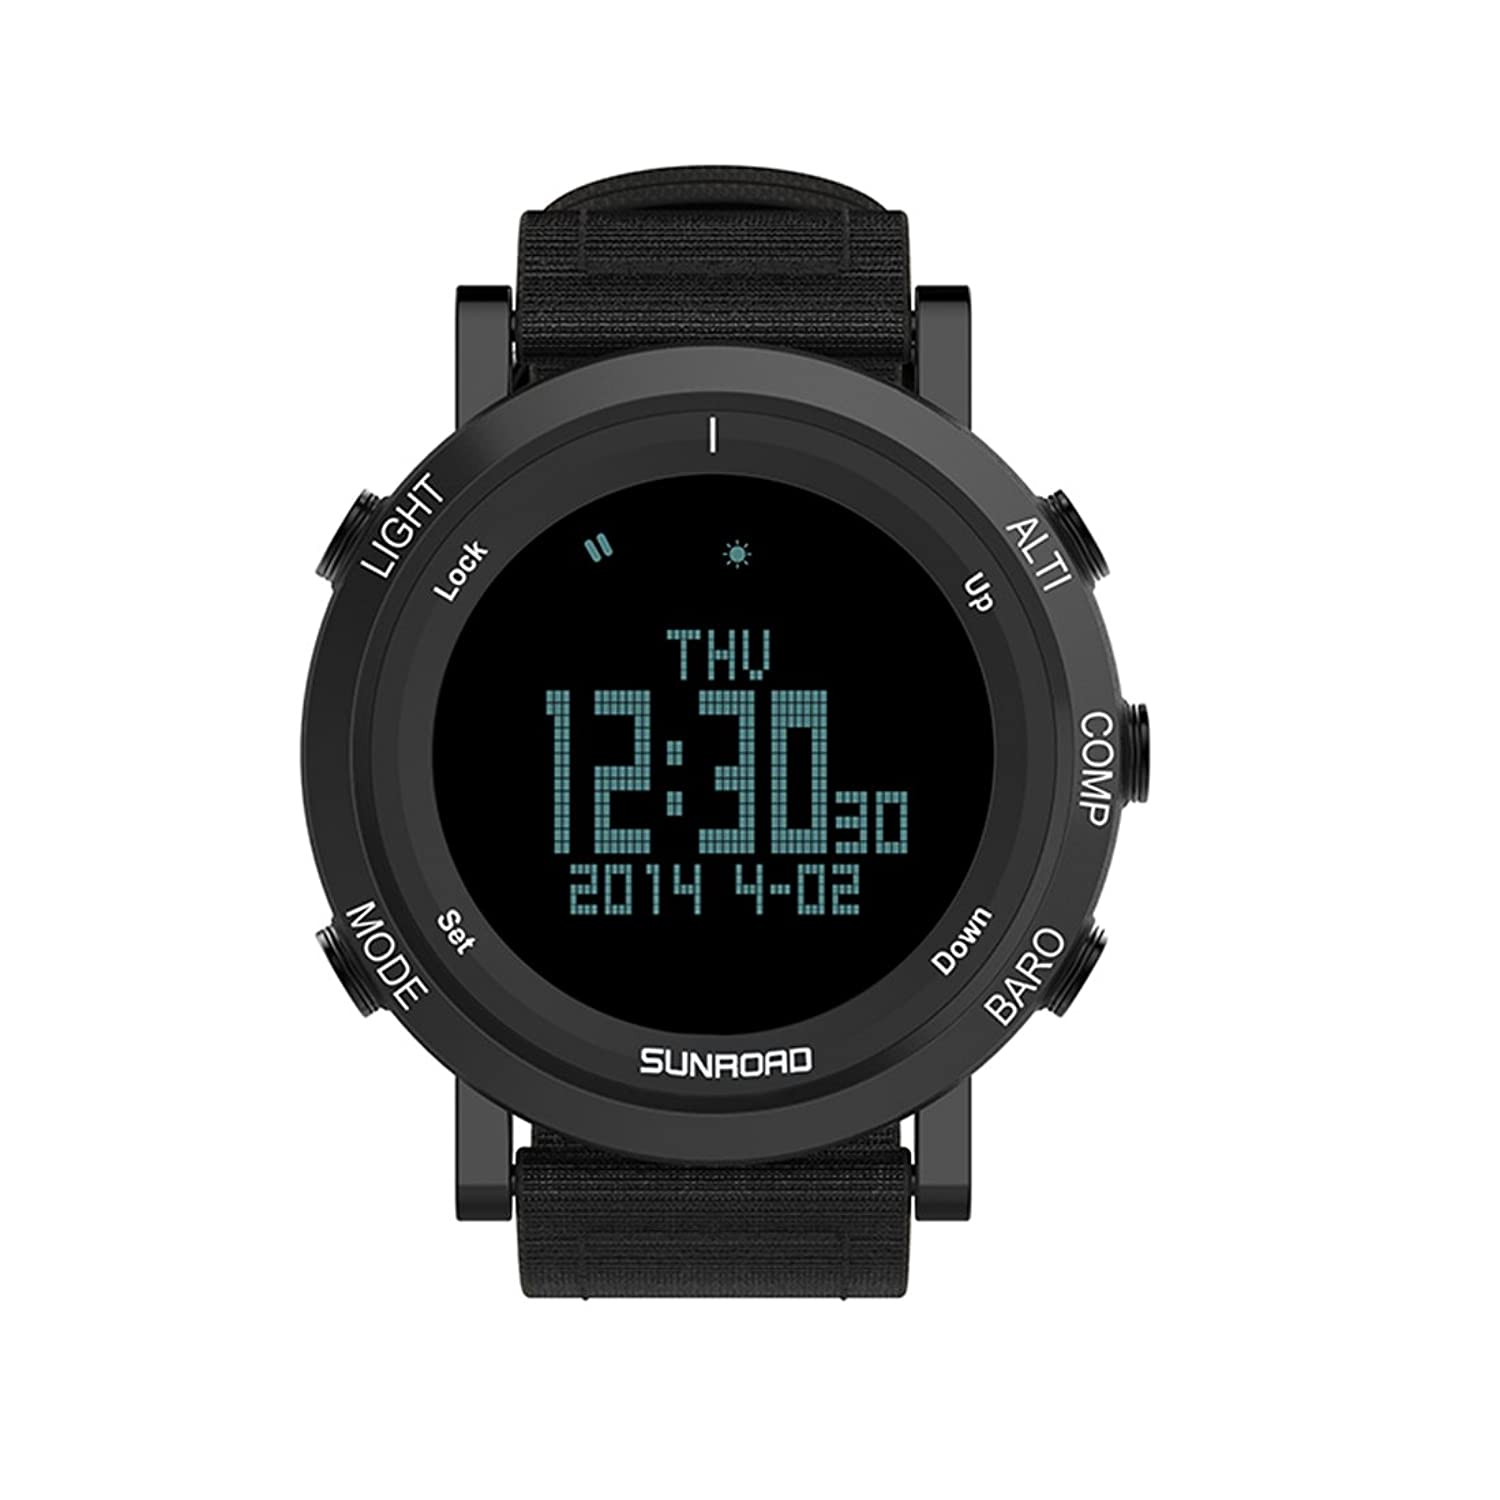 SUNROAD 2017 New Arrival Outdoor Sports Watch Men FR851B Altimeter Barometer Compass Pedometer Clock With High Quality